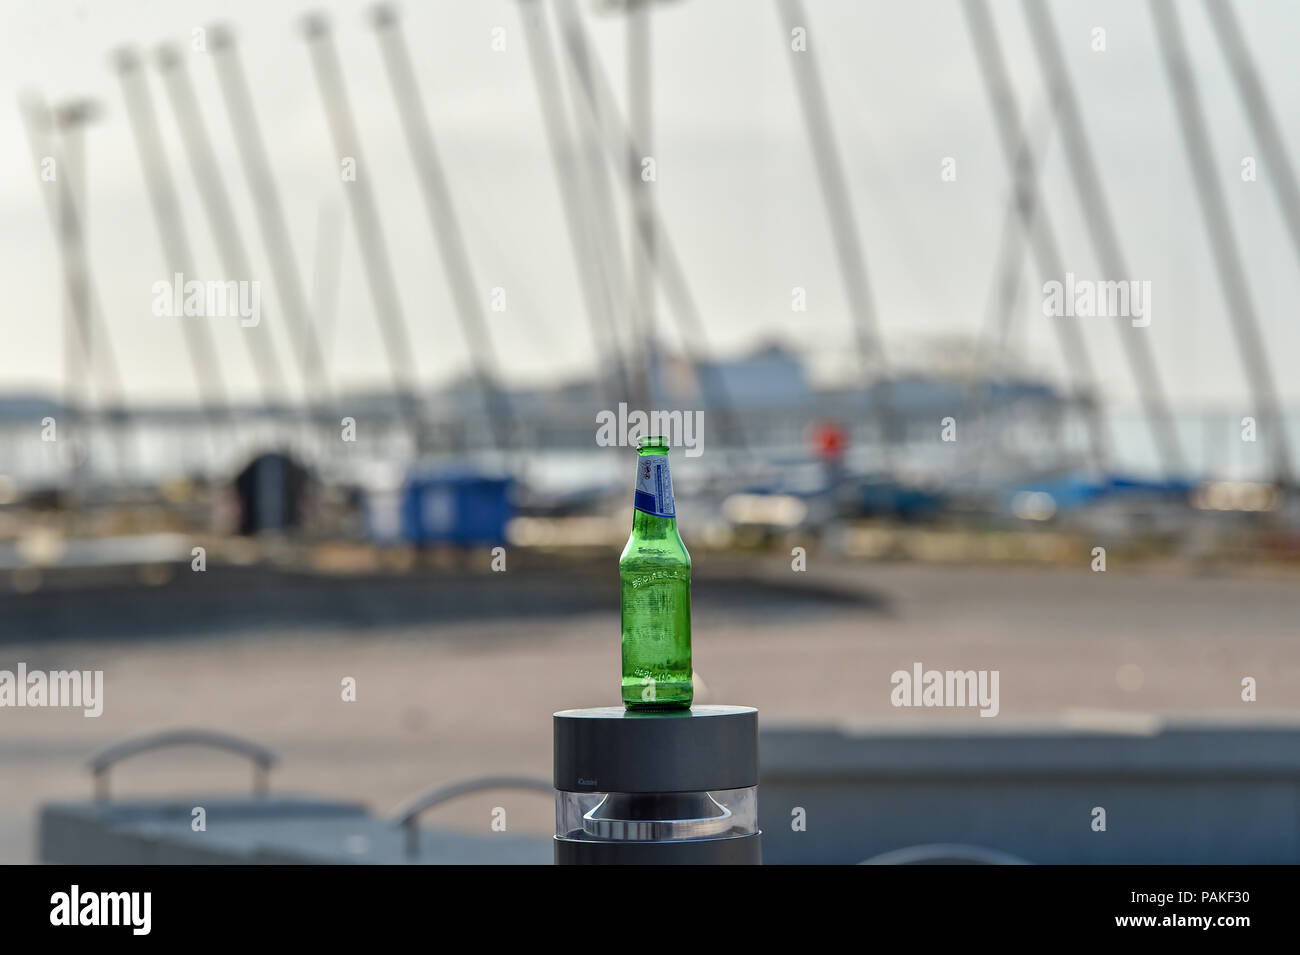 Brighton UK 24th July 2018 - Remnants of the night before on Brighton seafront as the heatwave conditions continue throughout some parts of Britain with an amber warning being issued and people being advised to stay out of the sun during the hottest parts of the day Credit: Simon Dack/Alamy Live News - Stock Image